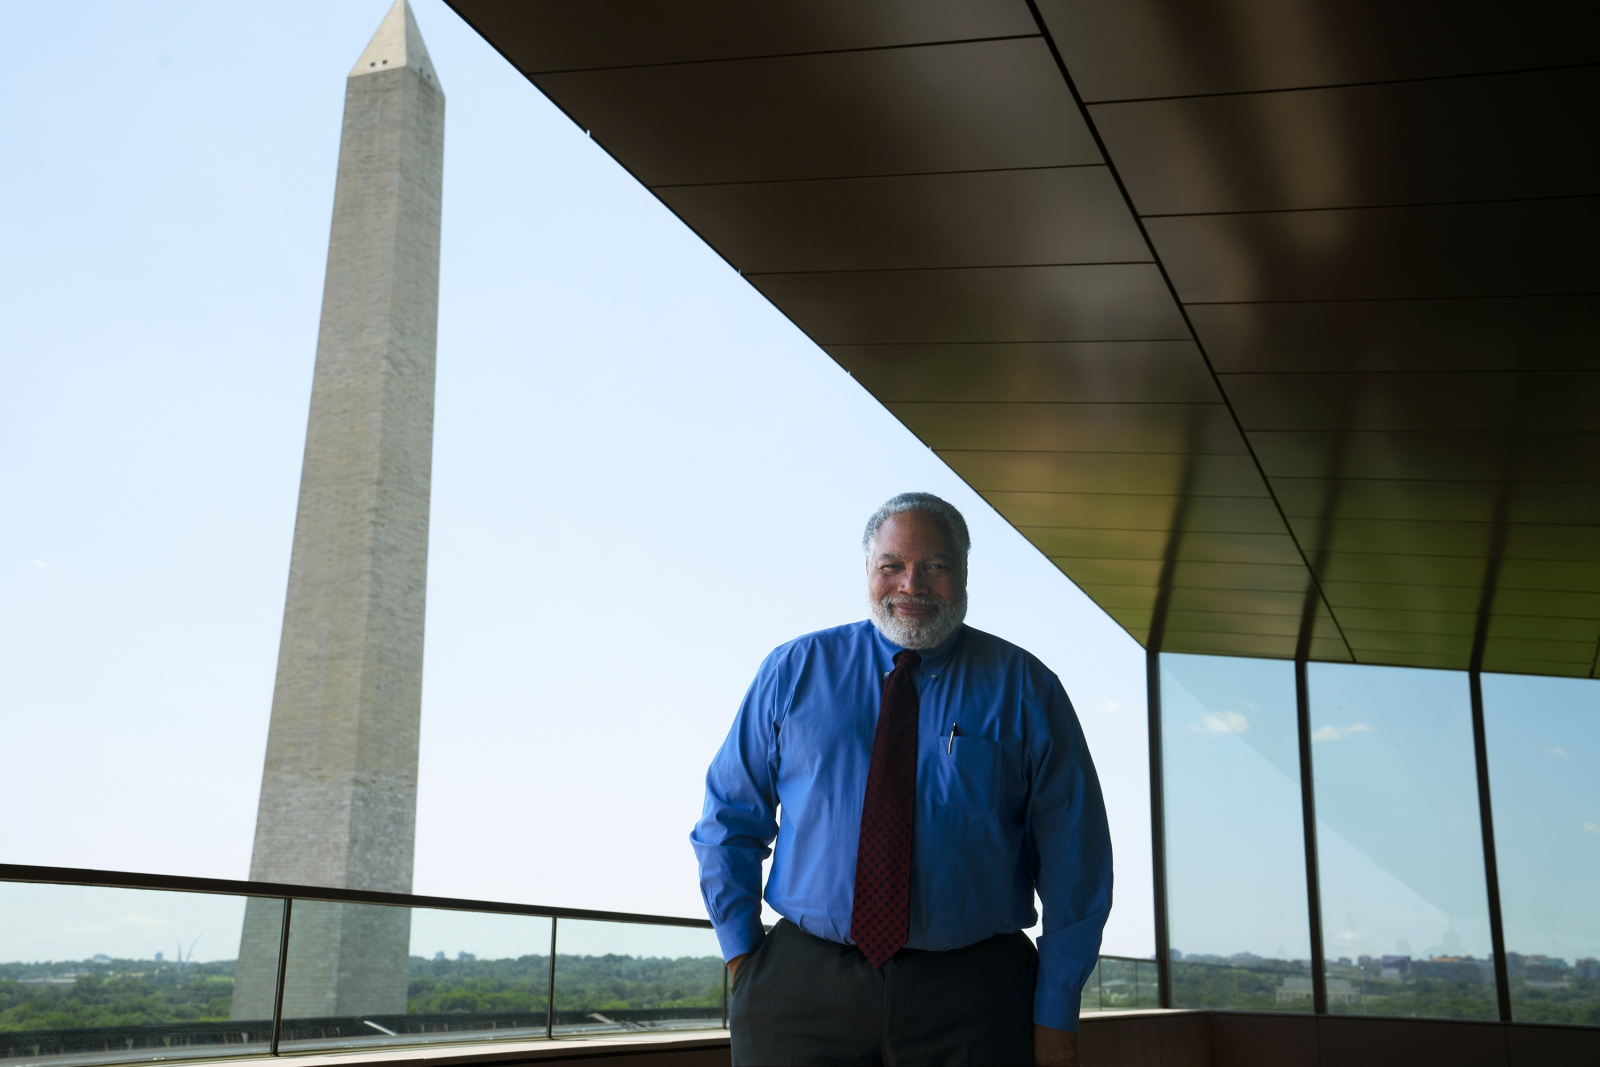 Lonnie Bunch, the founding director of the National Museum of African American History and Culture, stands for a portrait at his office in Washington D.C. He will soon become the Smithsonian Institution's new secretary.